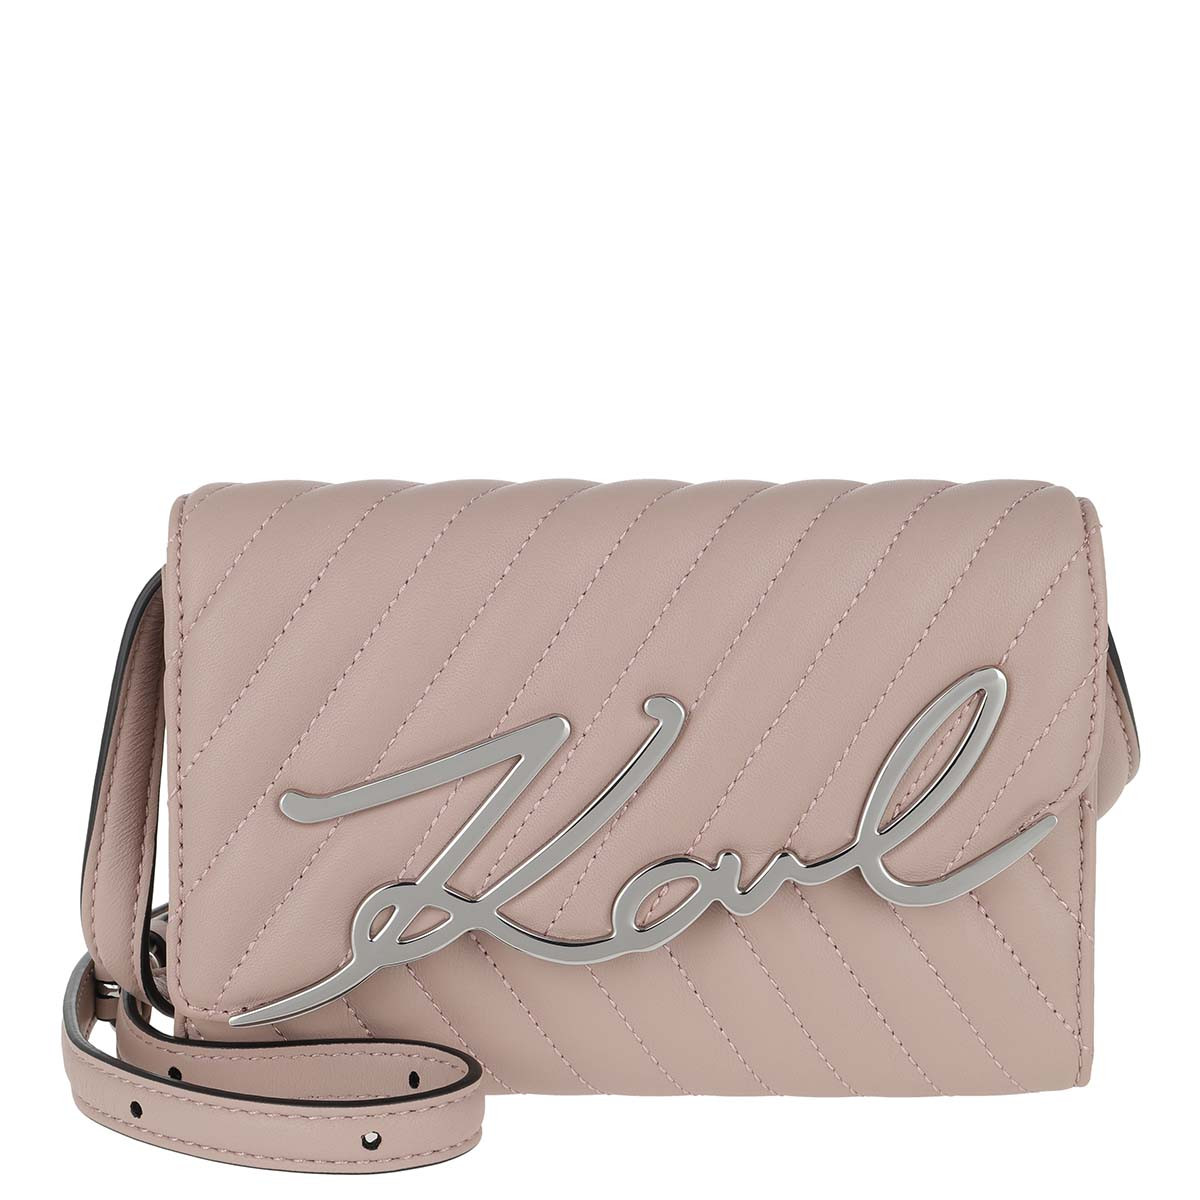 Karl Lagerfeld Gürteltasche - Signature Stitch Belt Bag Powder Pink - in rosa - für Damen